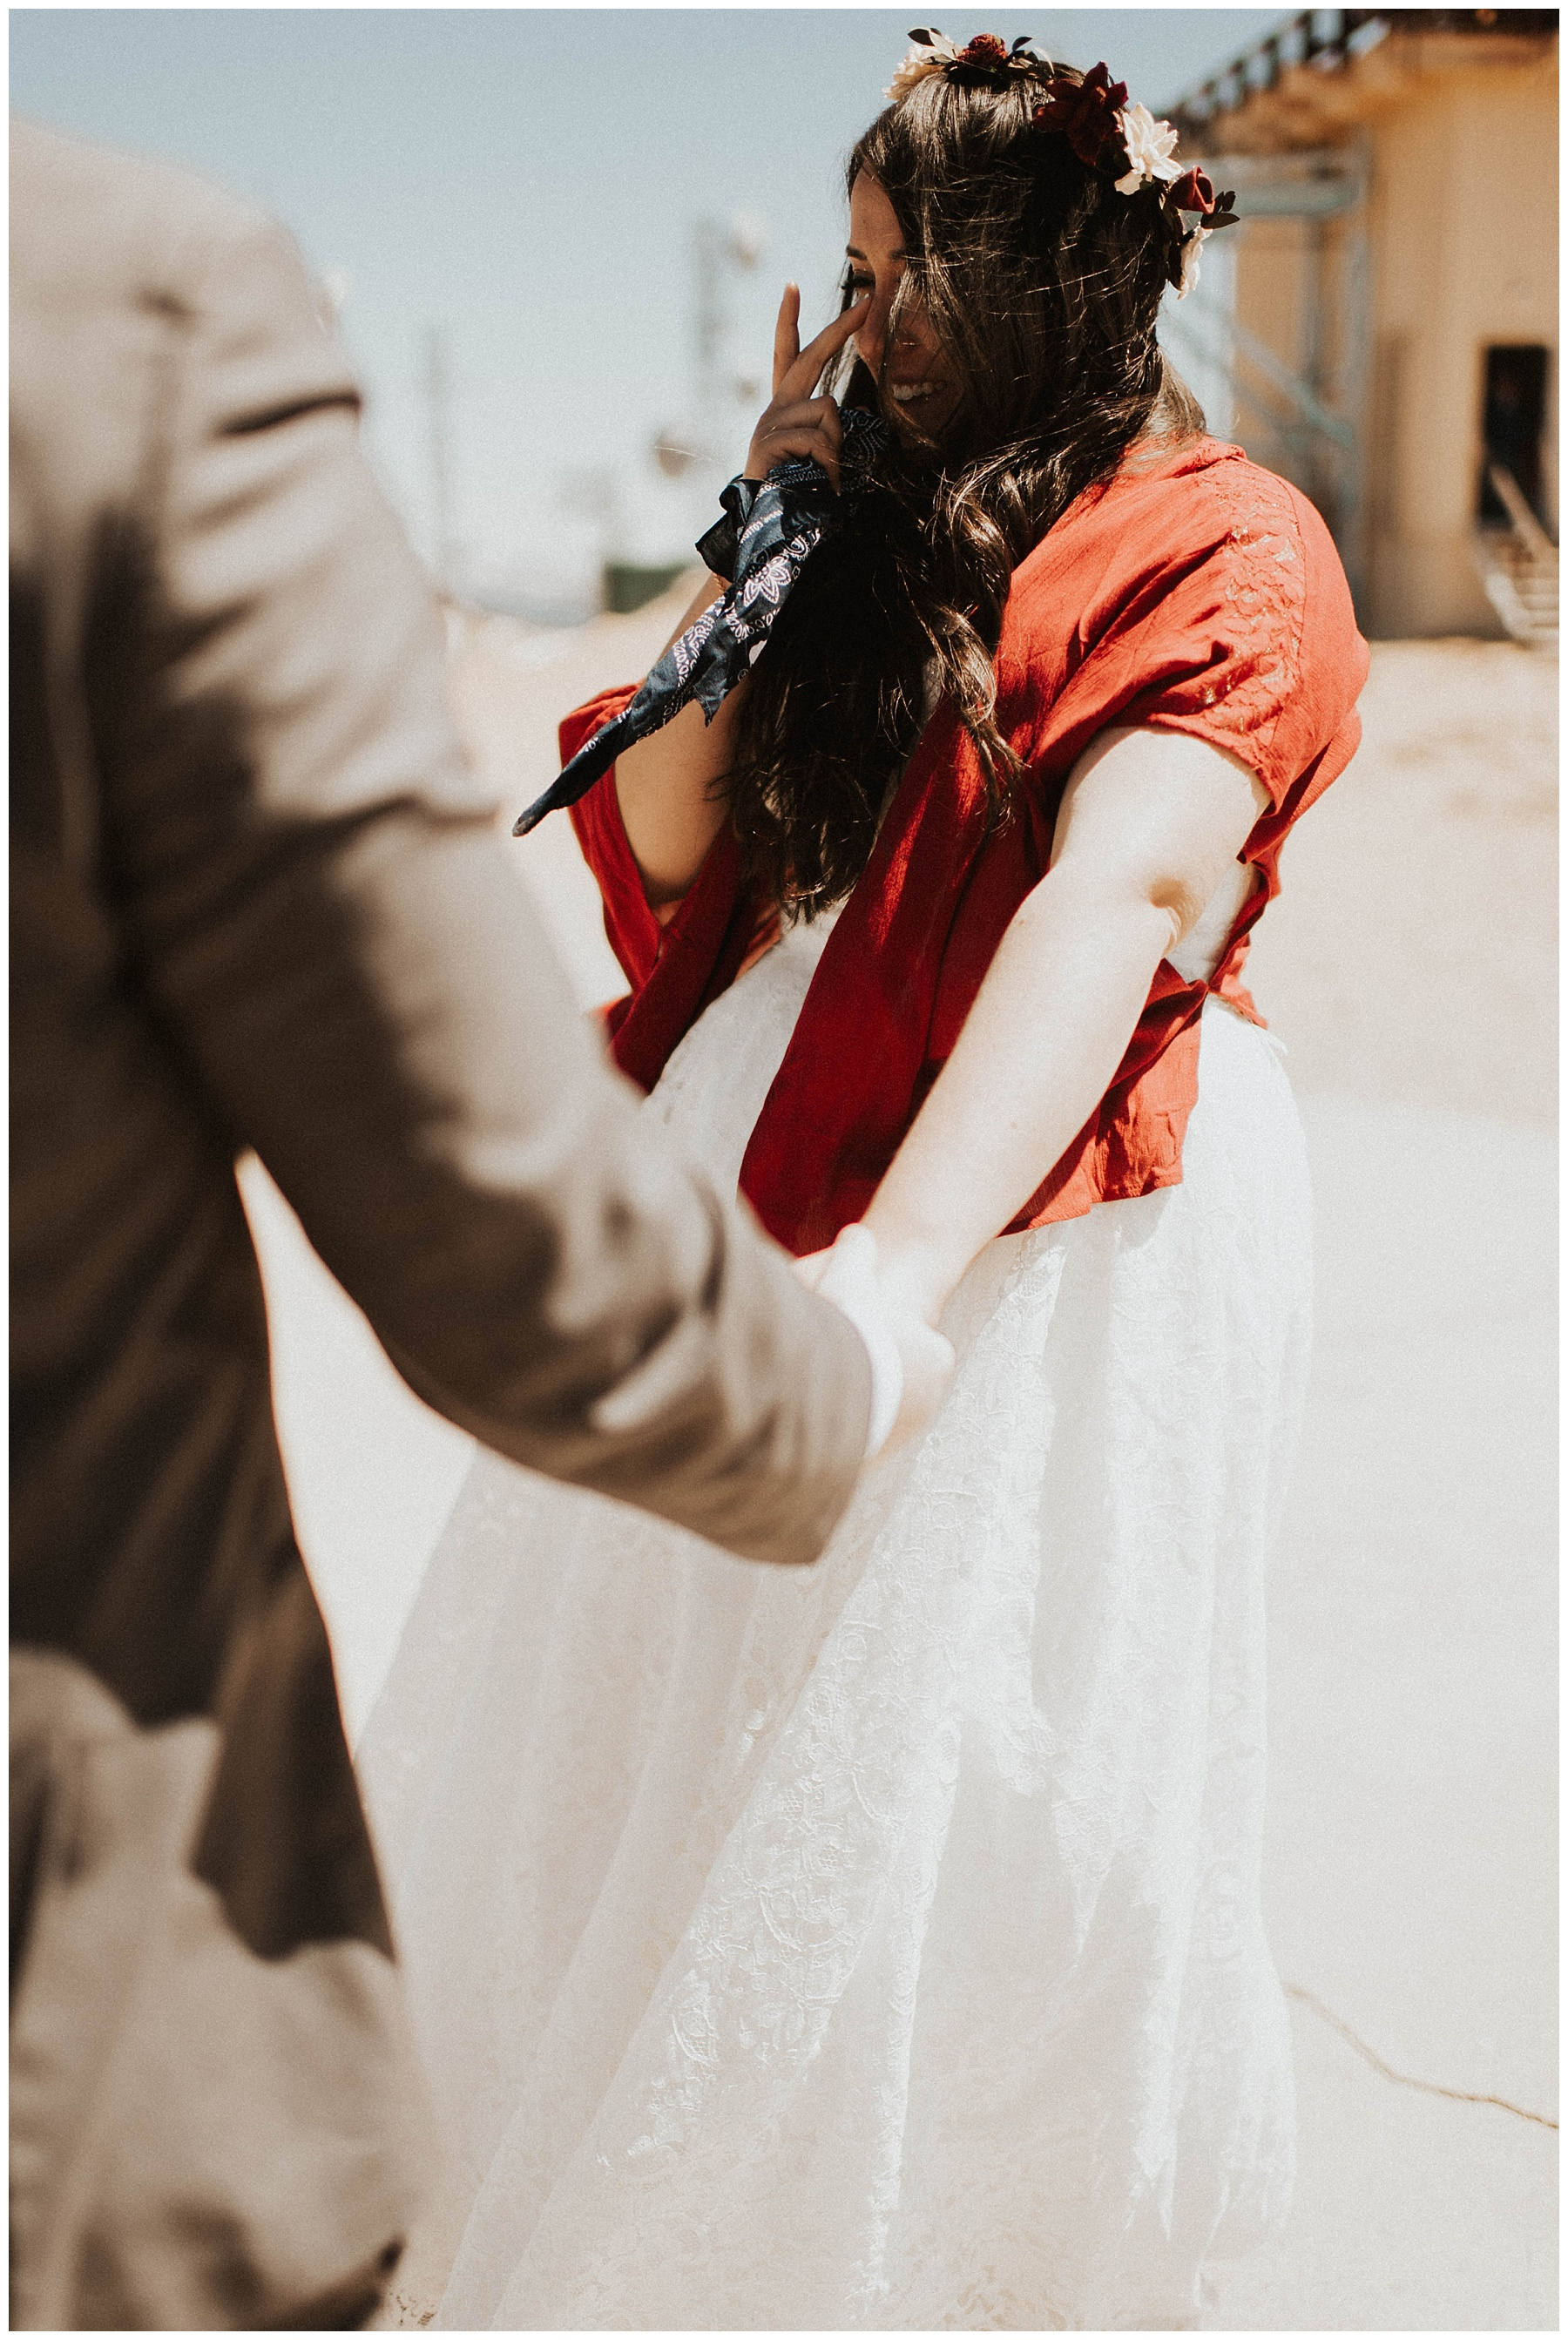 Ben + Lainee    Desert Colorado Wedding – Lauren F.otography 76df49802cd86